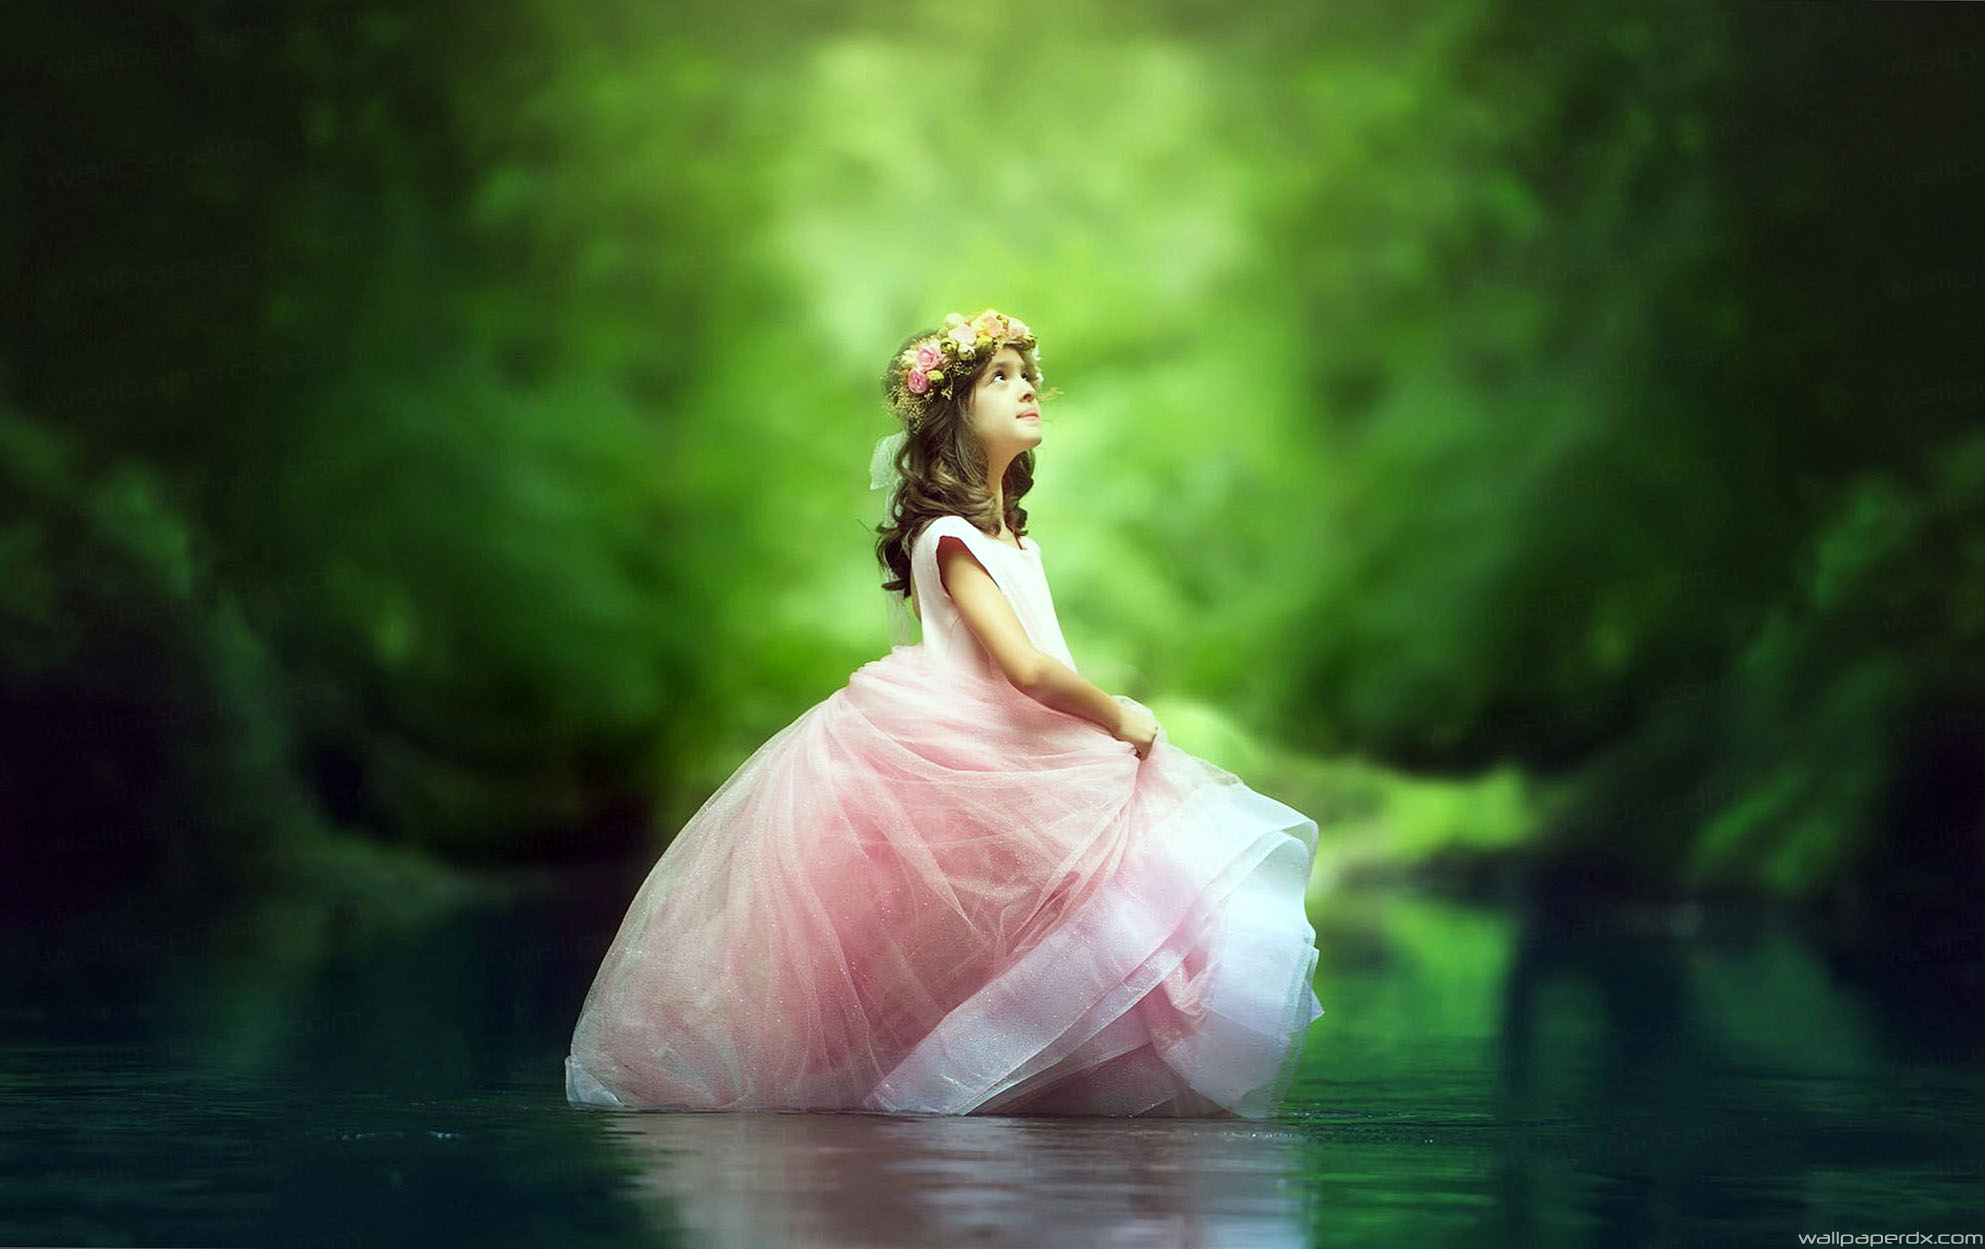 Cute Small Girl Wallpapers For Facebook Download Little Princess Wallpaper Gallery